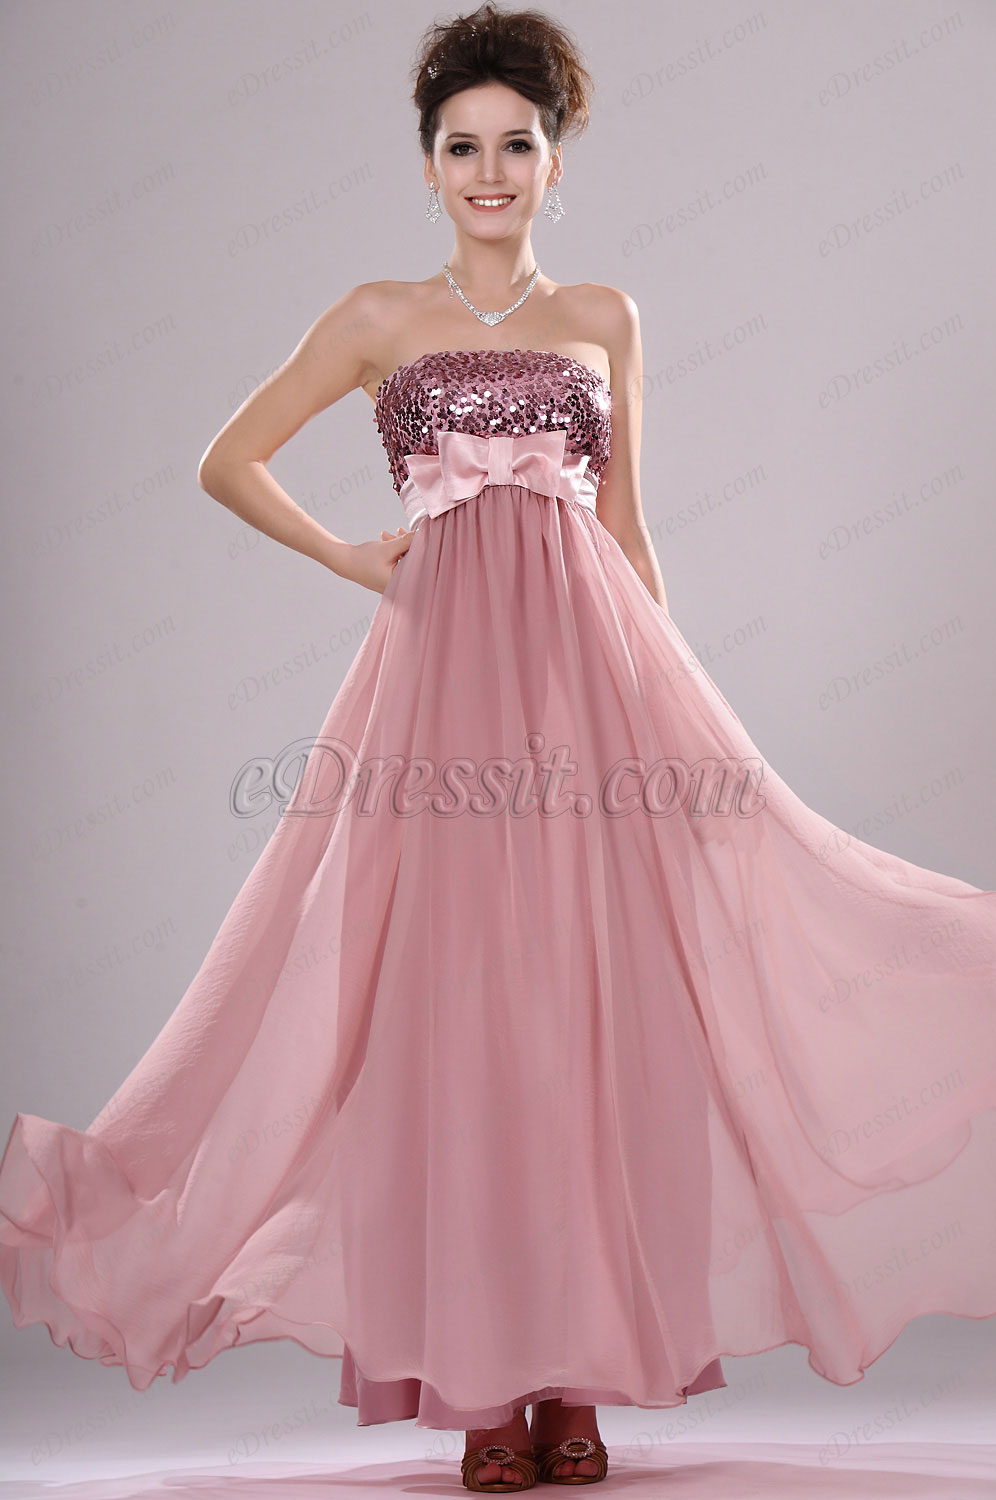 Clearance Sale !  eDressit Chic Evening Dress (00114301b)